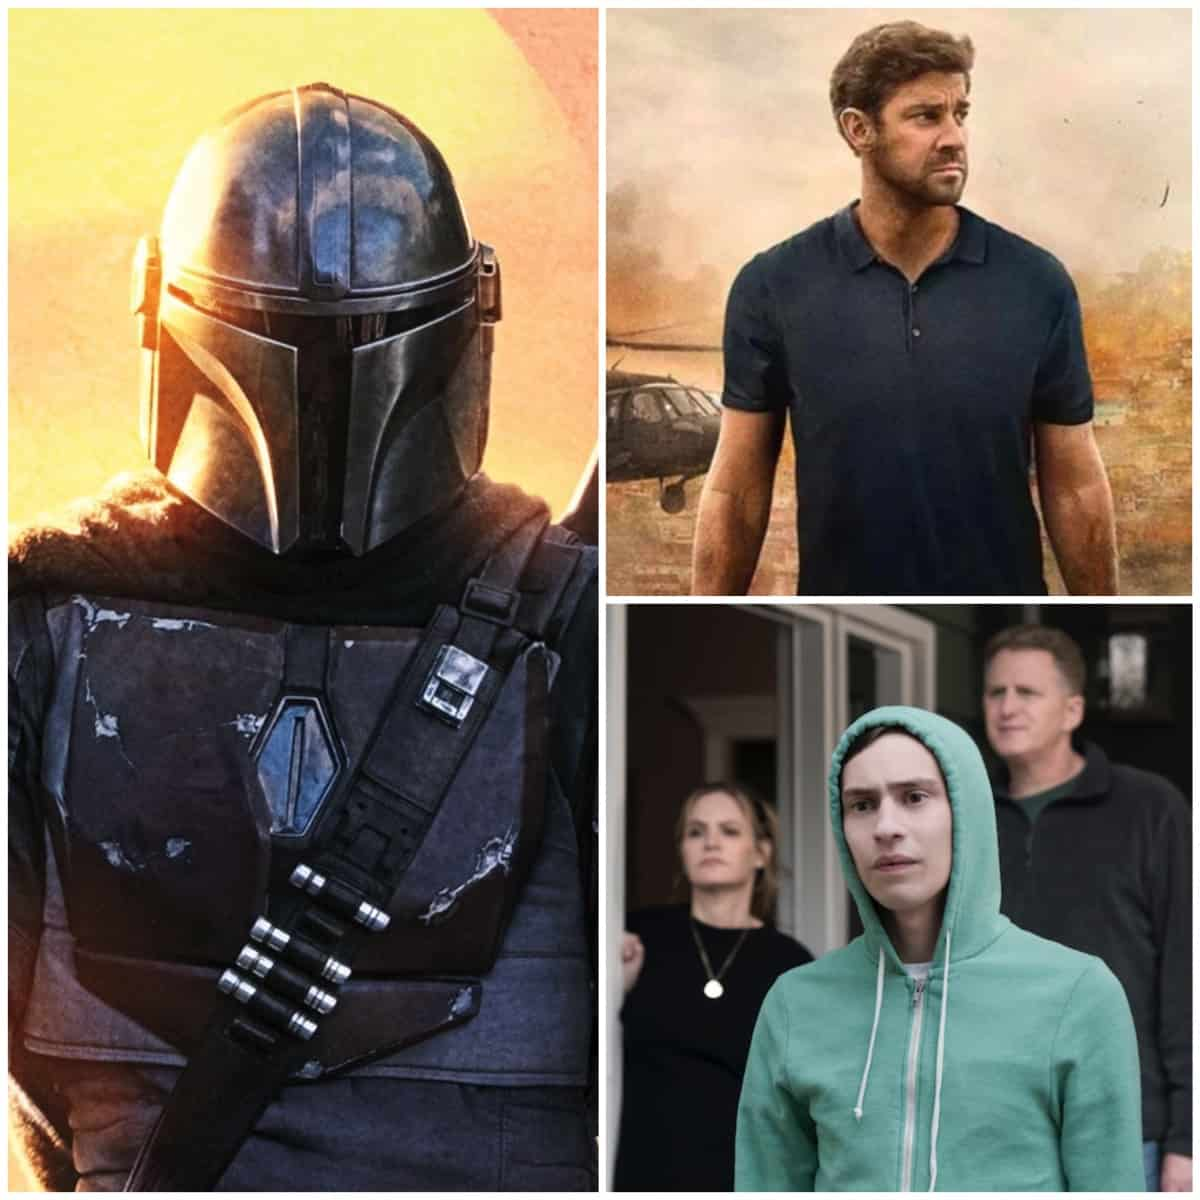 I've been enjoying The Mandalorian, Jack Ryan, and Atypical in my spare time. What have you been watching?